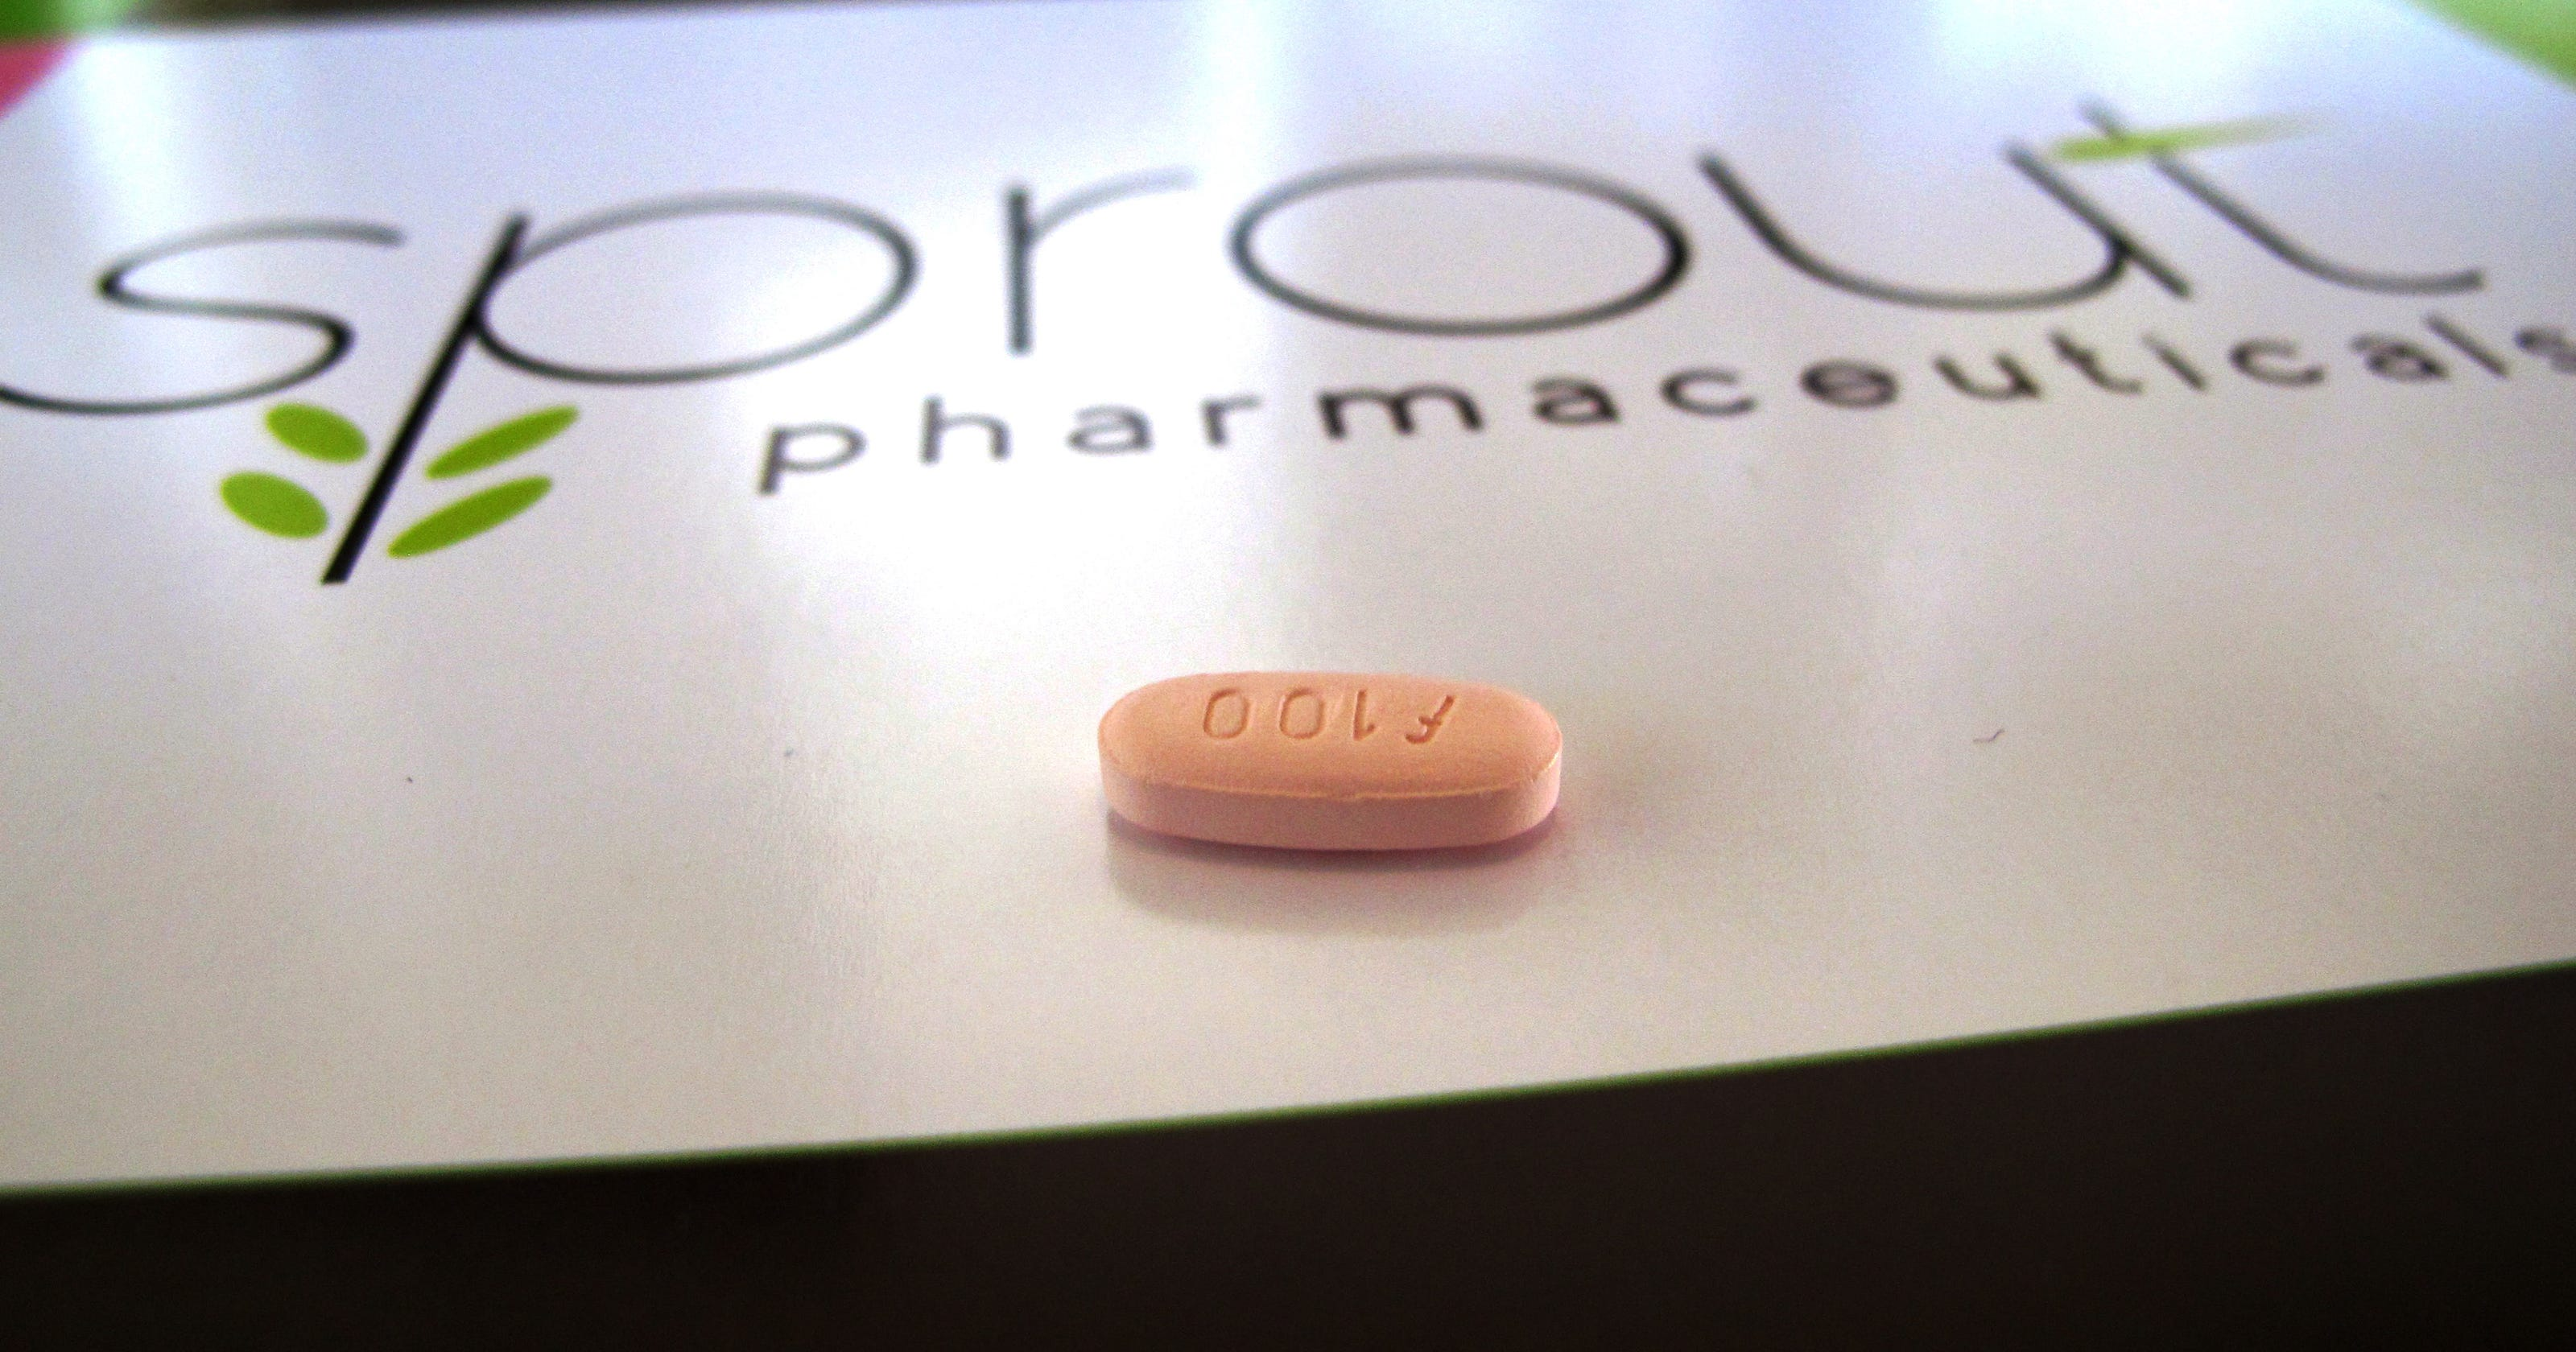 5 things to know about 'female Viagra'